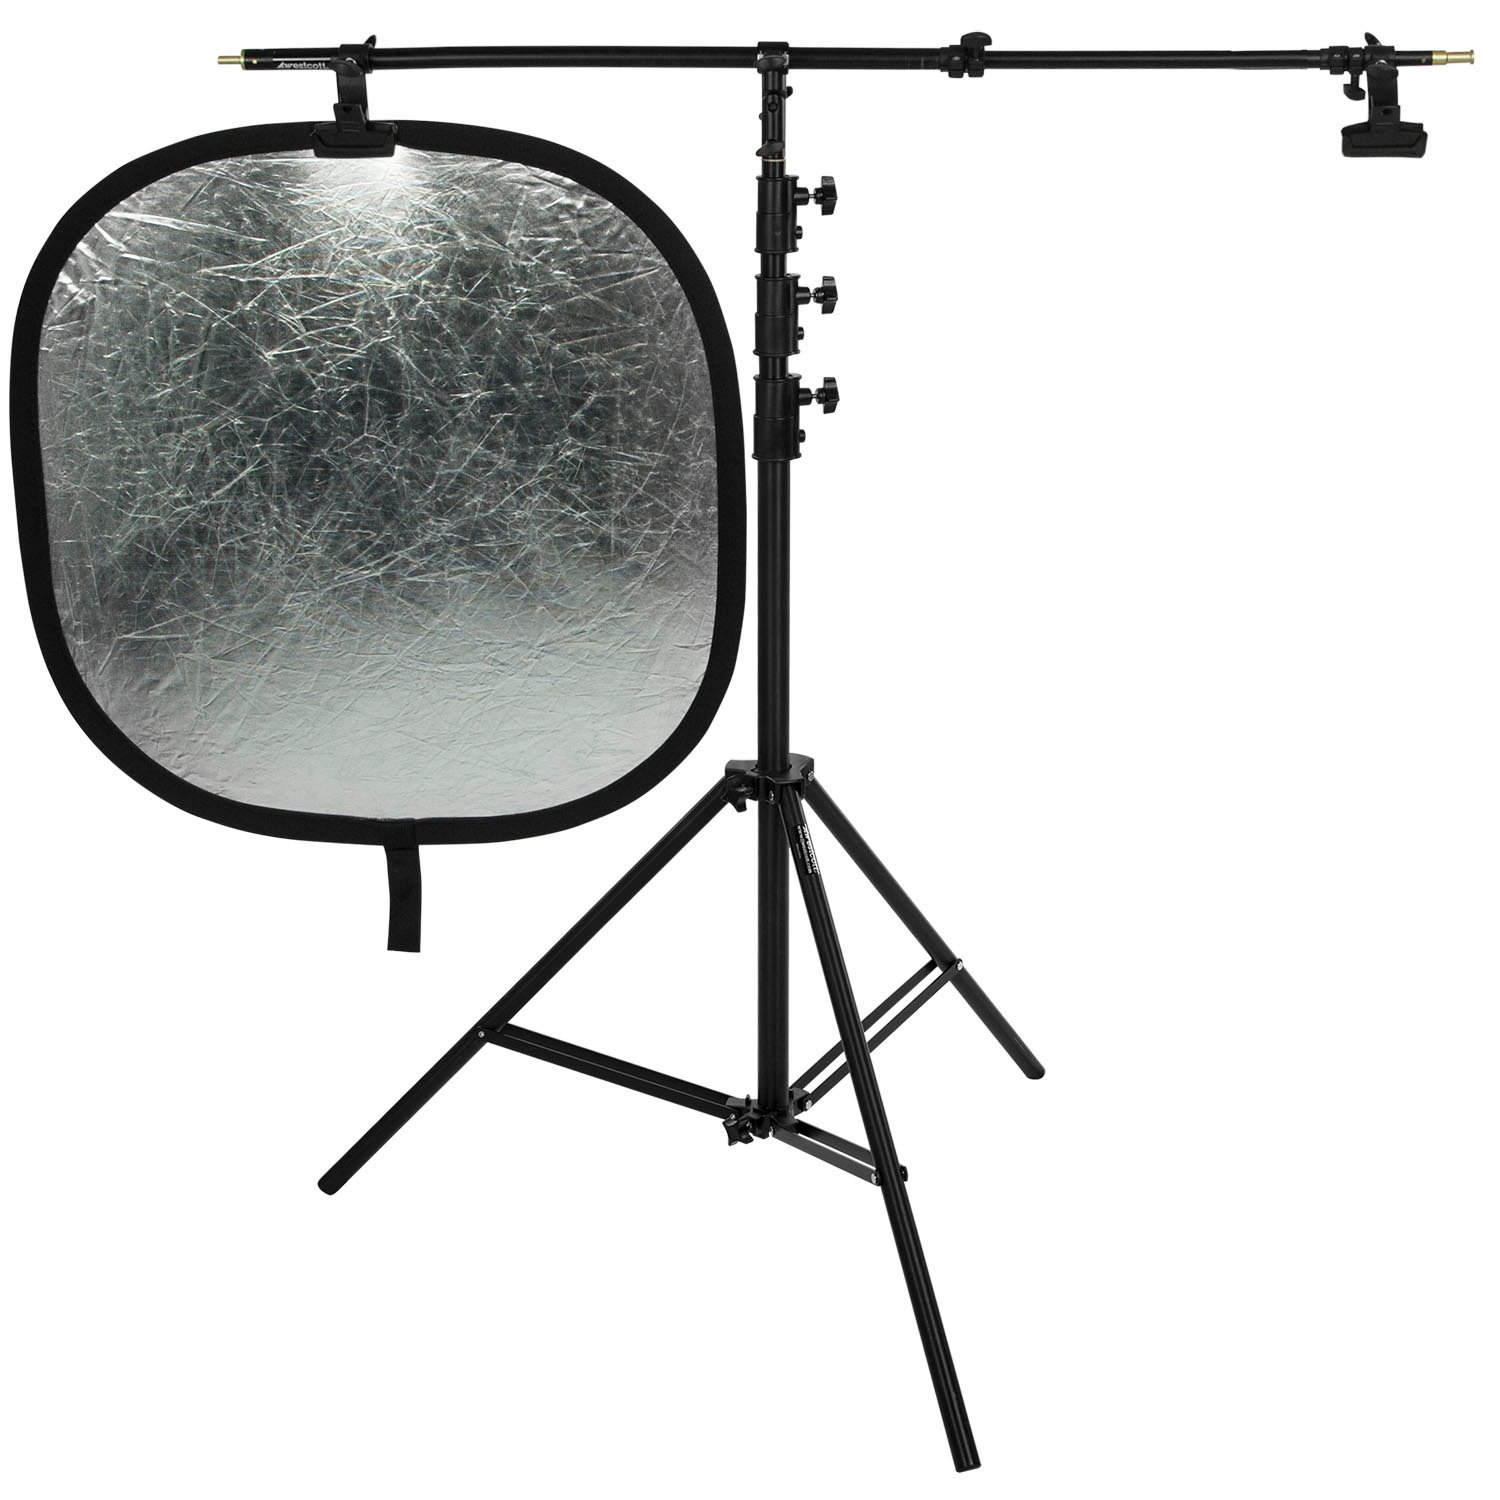 "For Mounting Reflectors up to 72"" Wide"